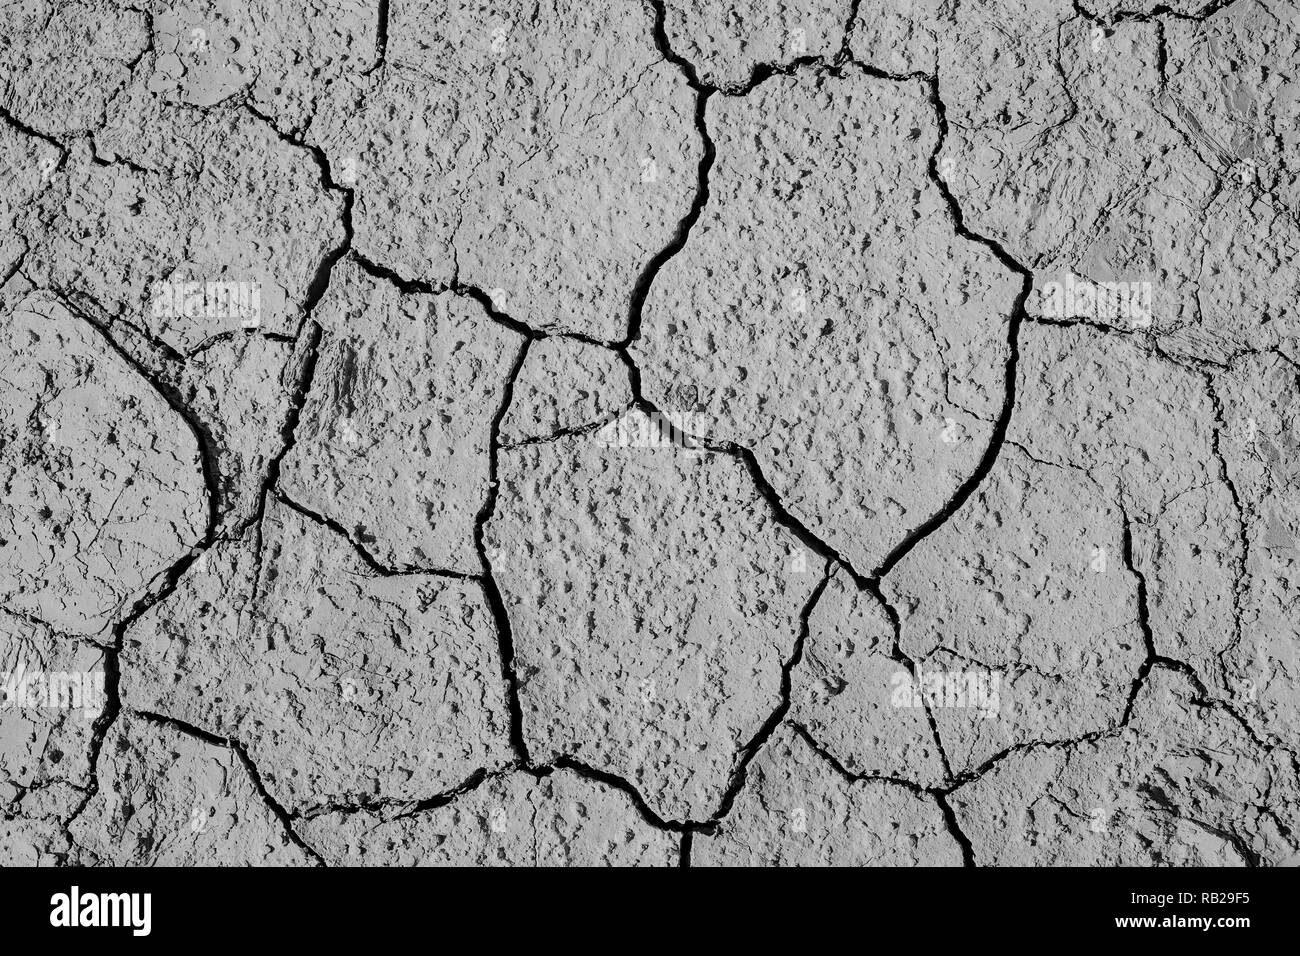 Cracked ground caused by drought in summer on top-view, detail textured and background - Stock Image